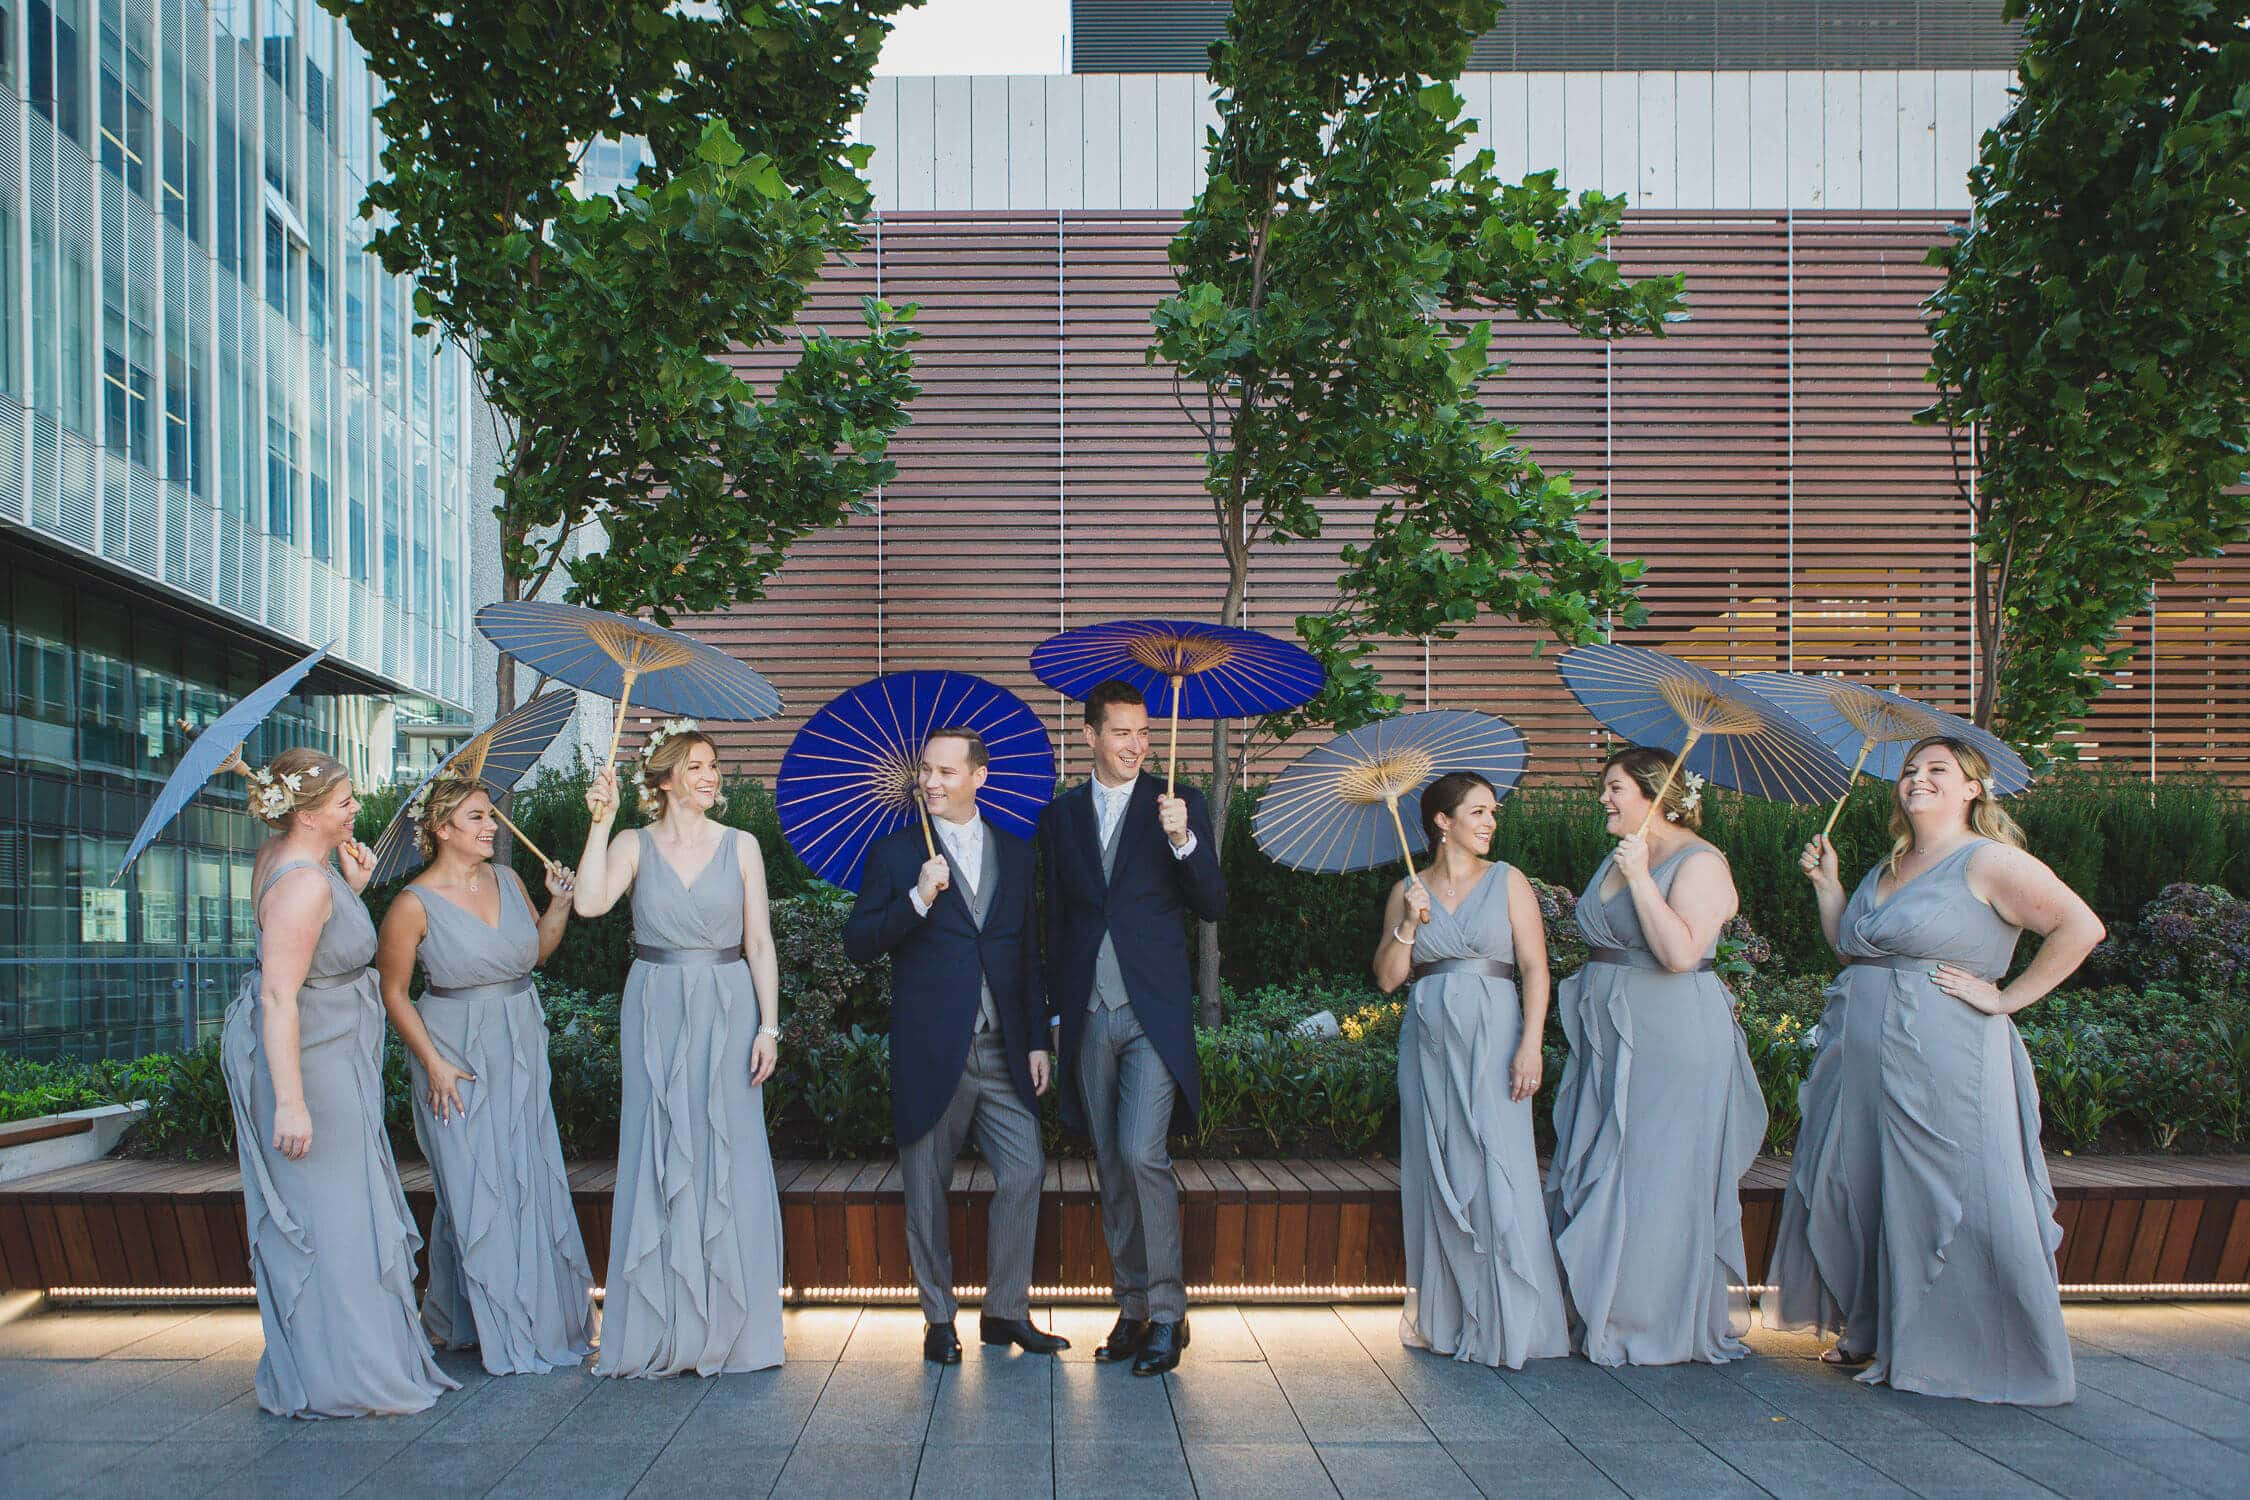 morning-coat-grooms-vera-wang-bridesmaids-telus-garden-wedding-1